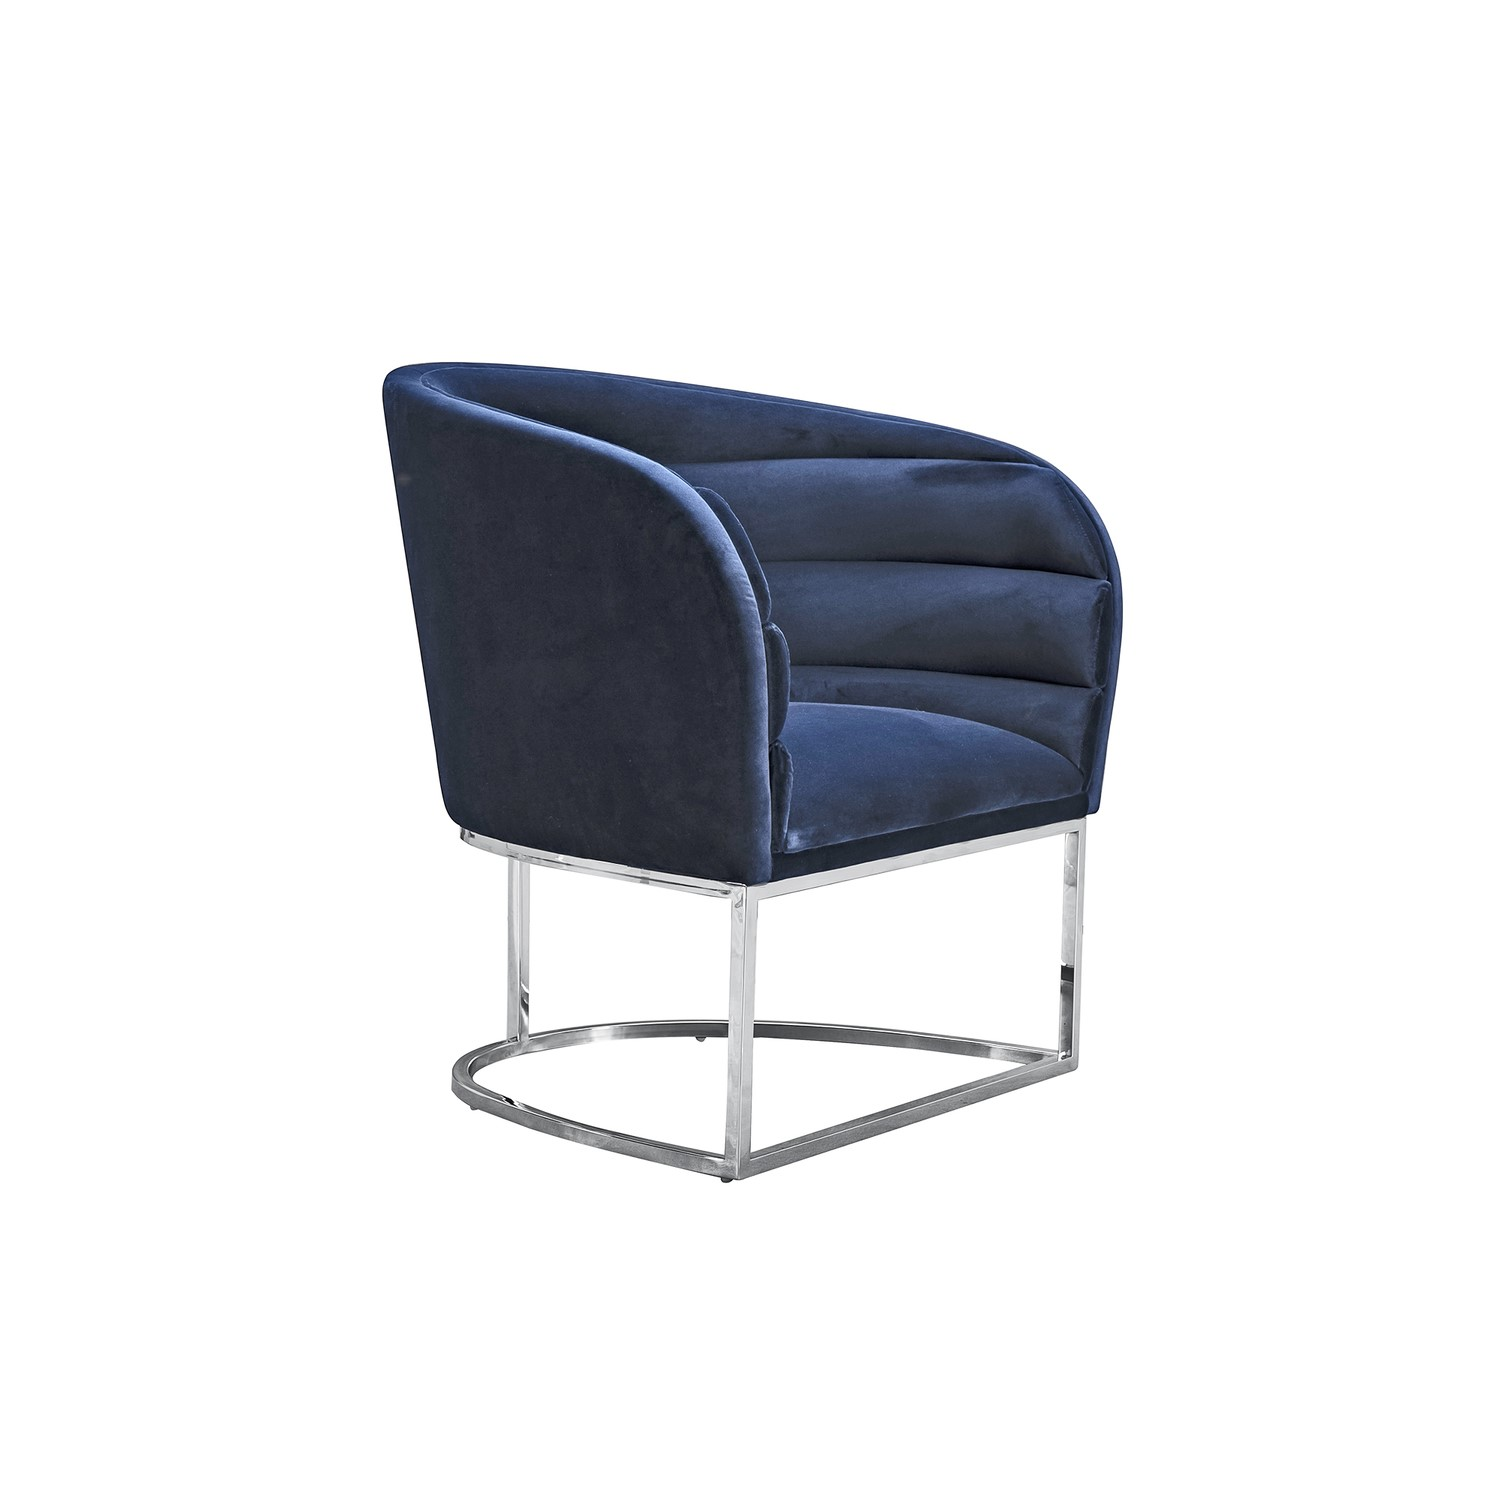 Image of: Upton Accent Chair Blue Furniture123